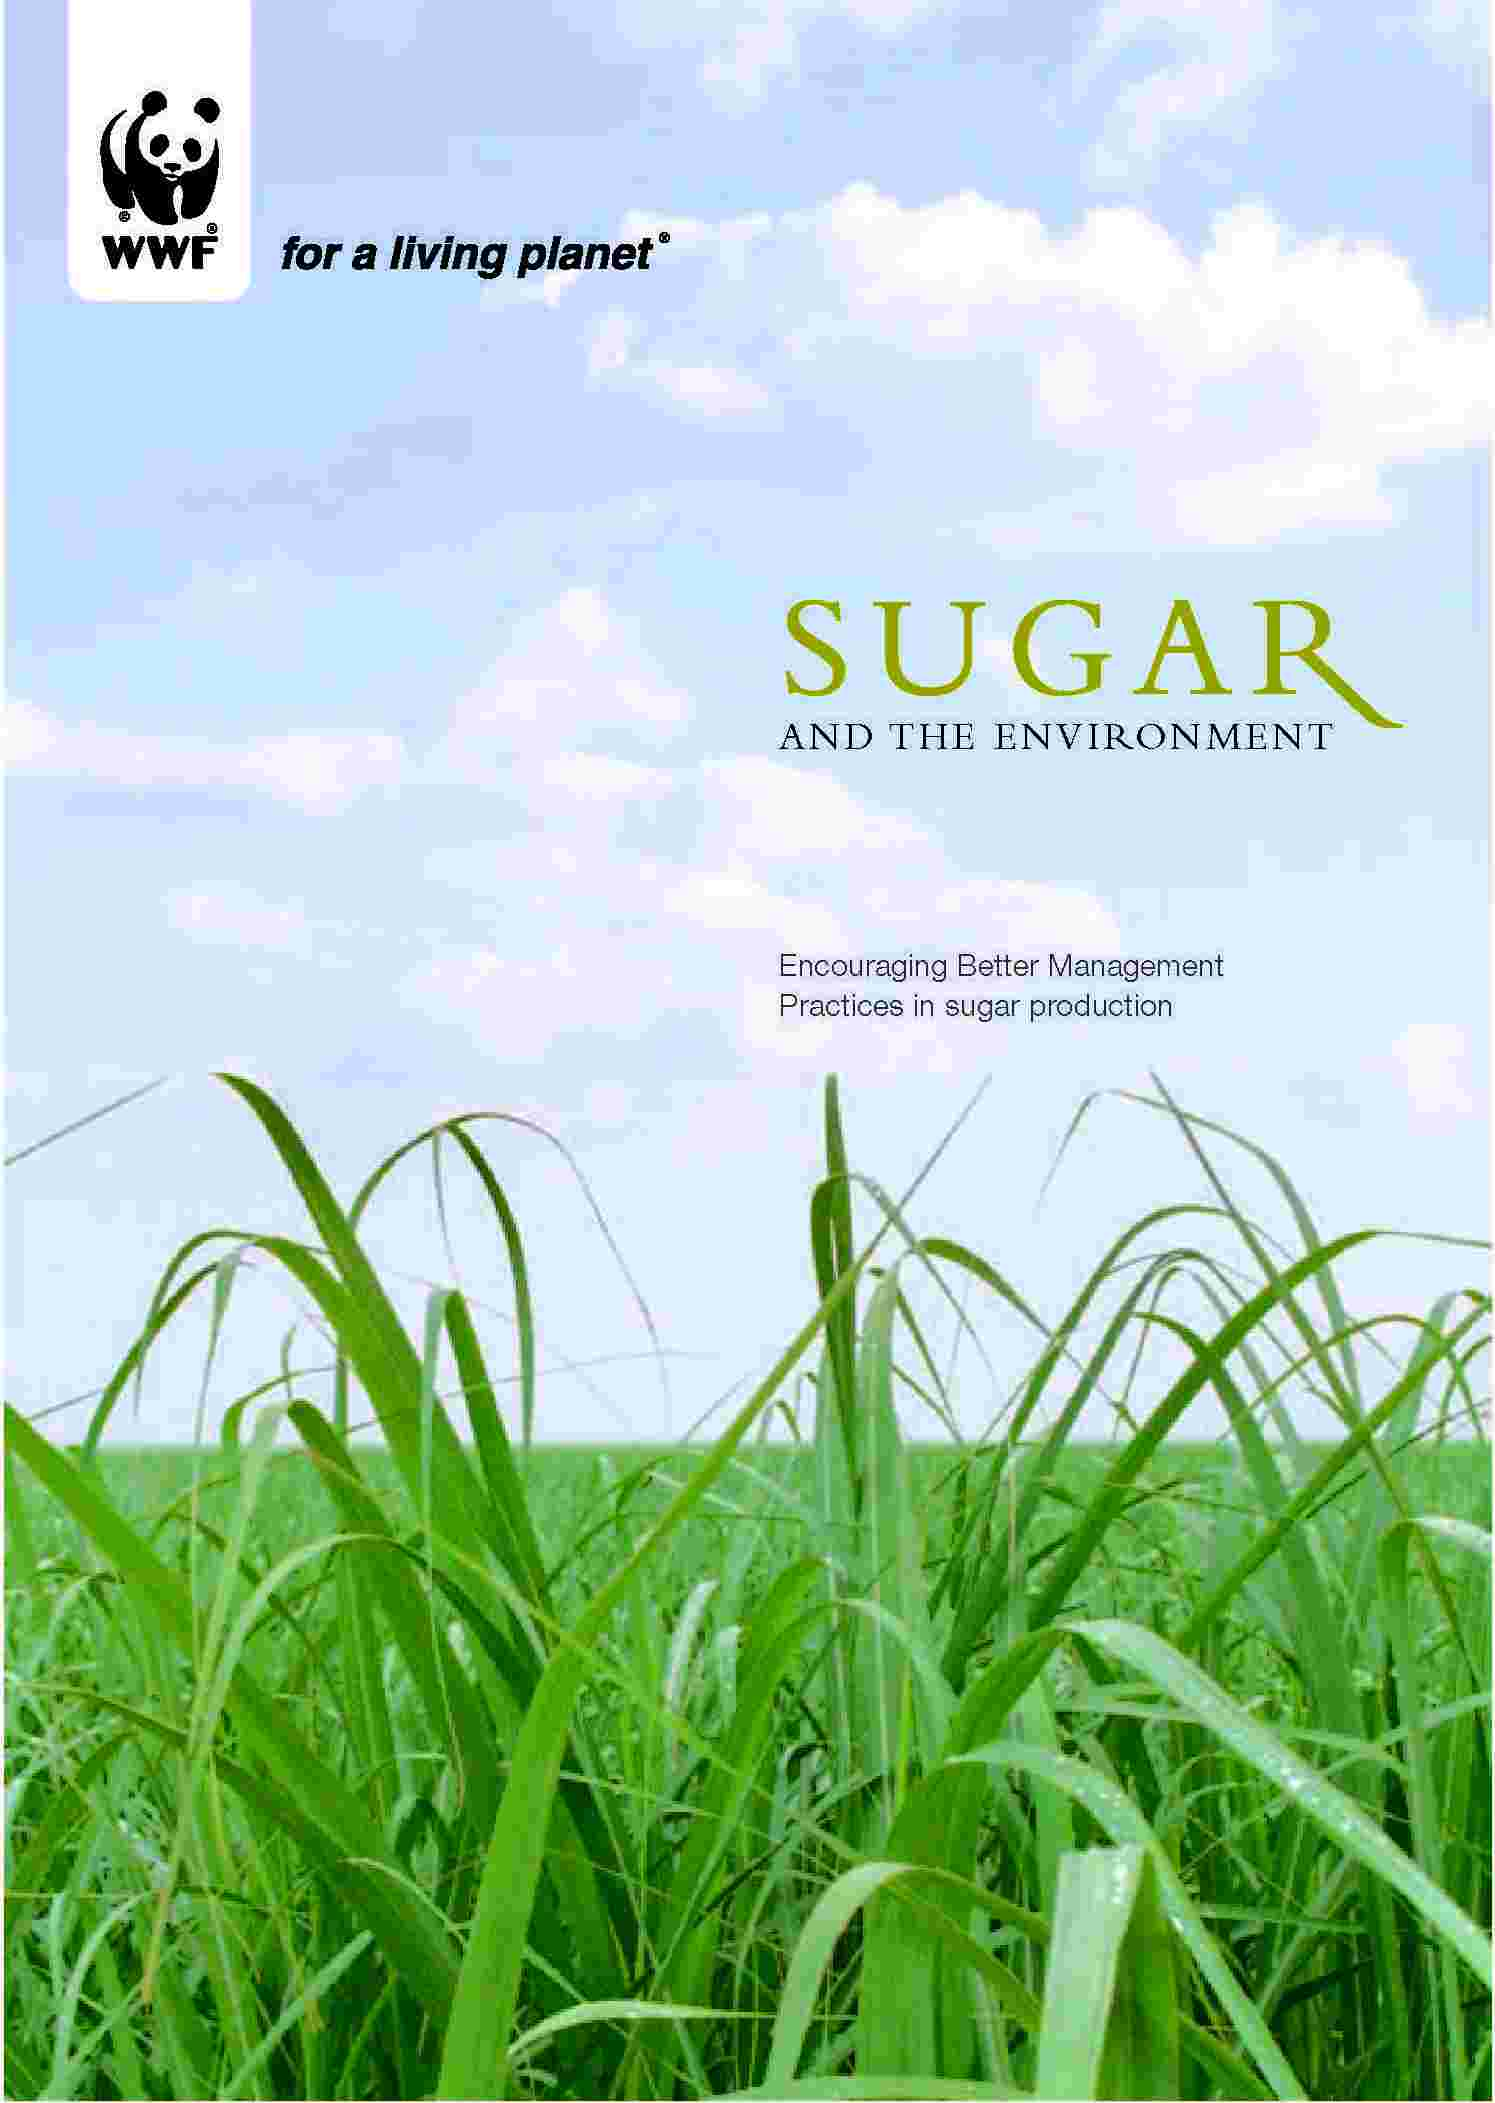 Sugar and the Environment - Encouraging Better Management